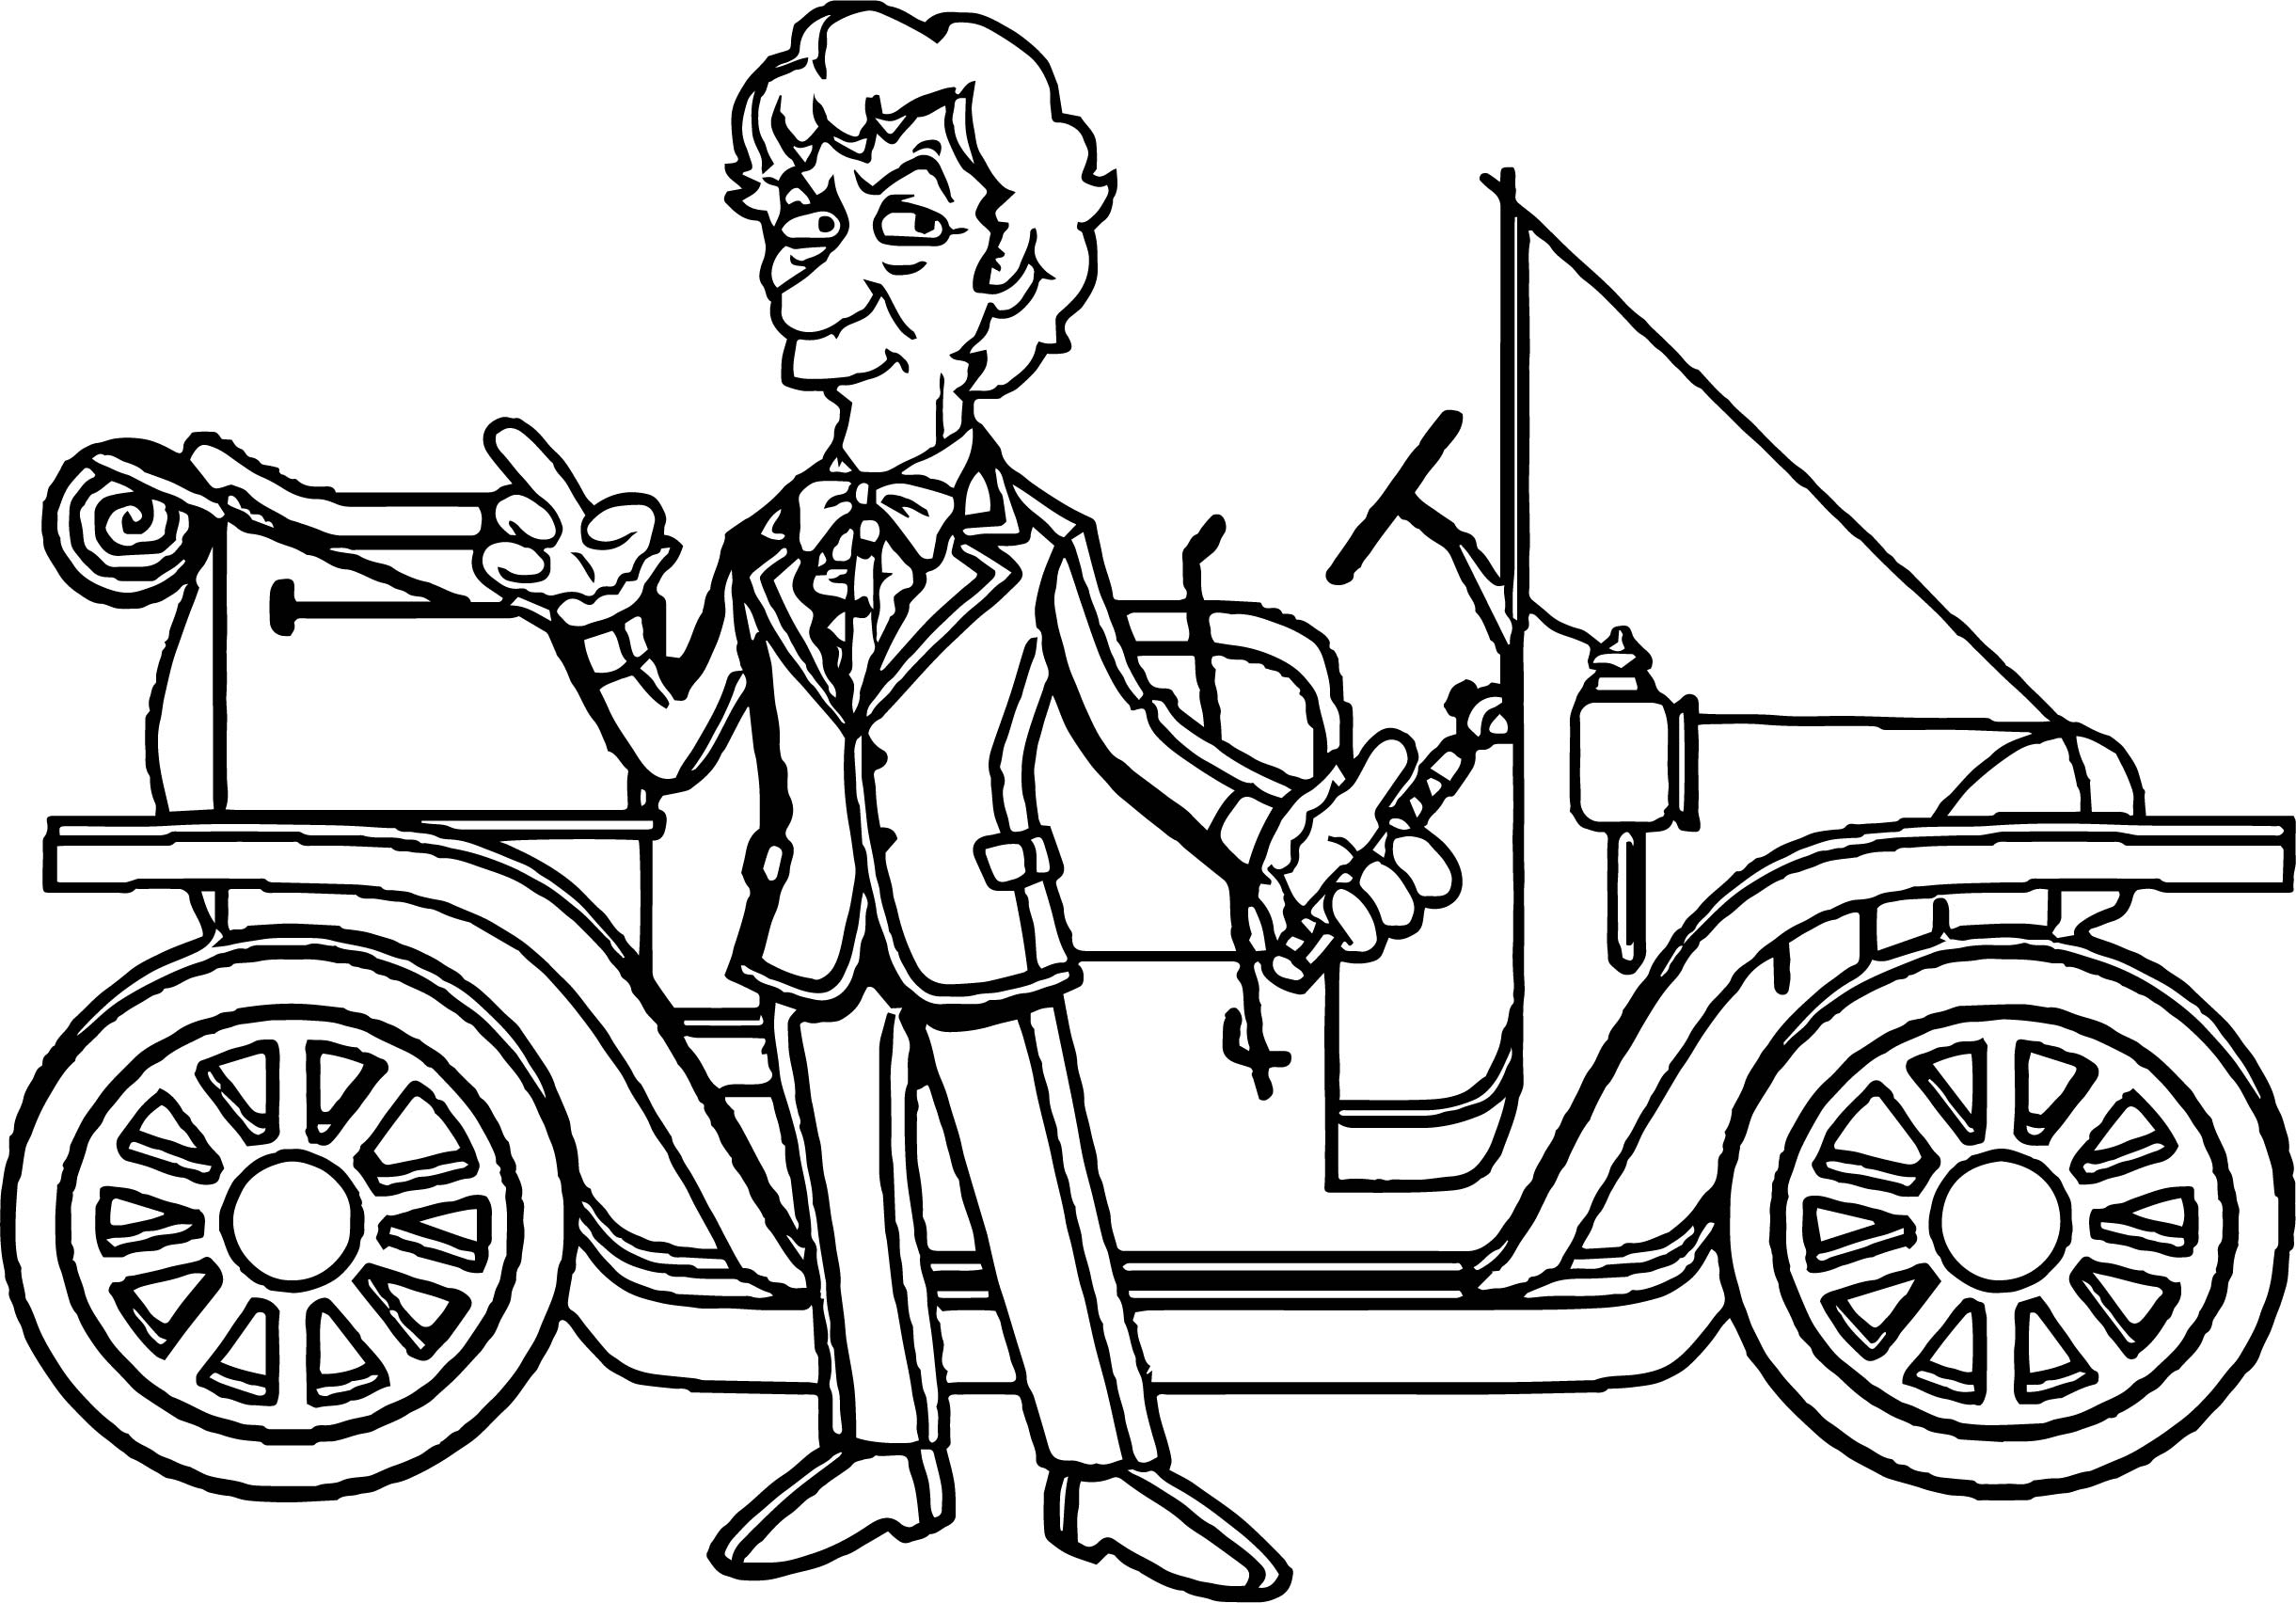 Simpsons Taxi Driver Car Coloring Page